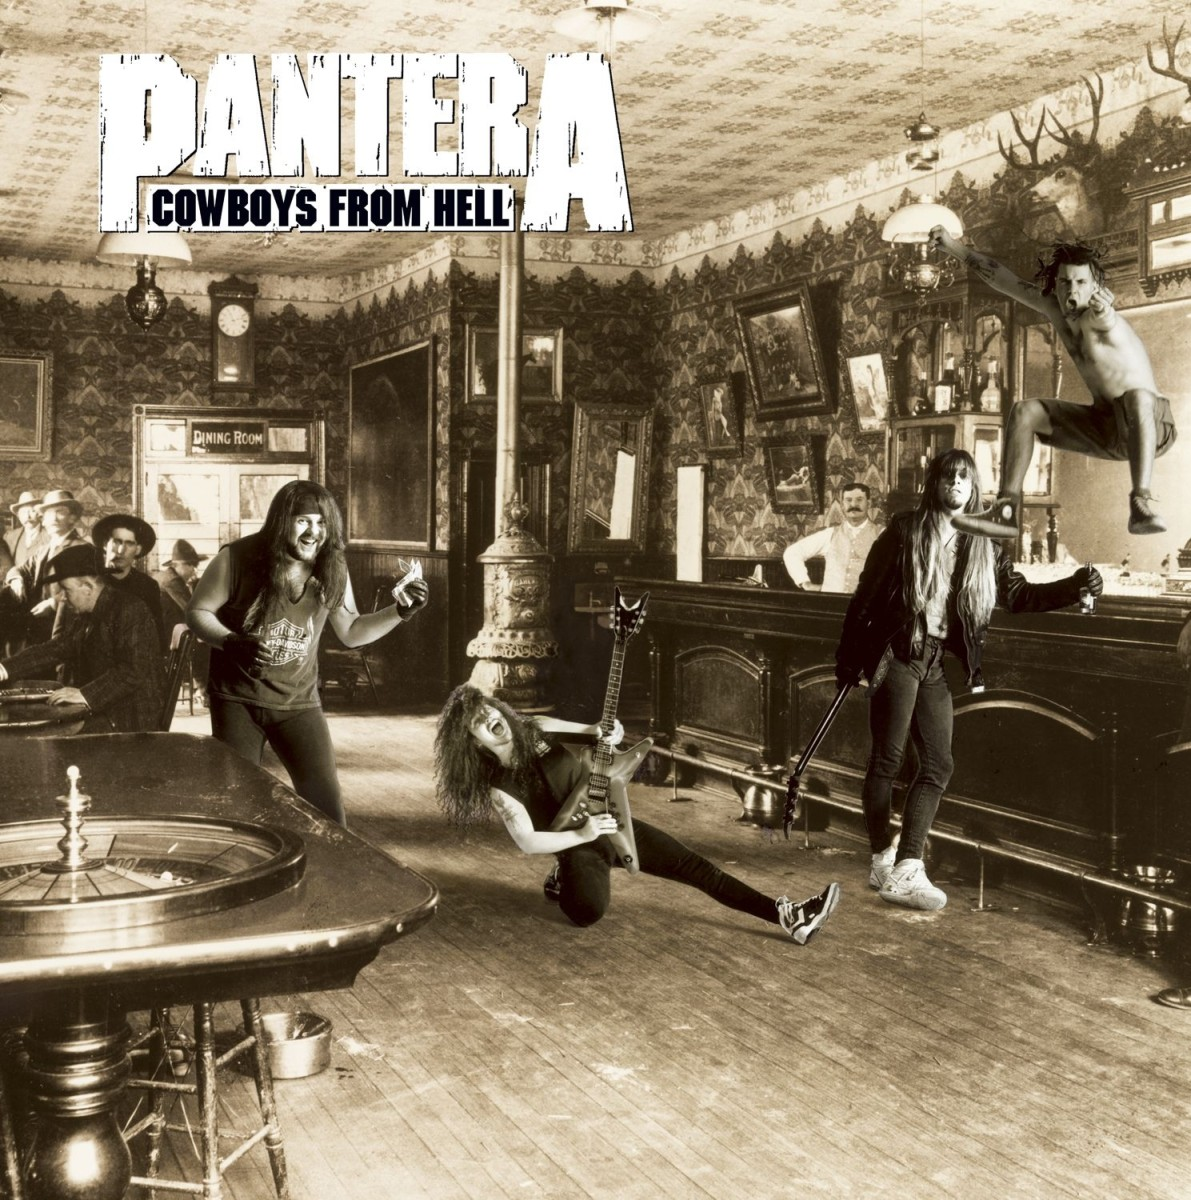 The cover shows the band members of Pantera having fun at a bar or saloon. Vocalist Phil Anselmo is shown at the top right of the photo as he is in the air celebrating.